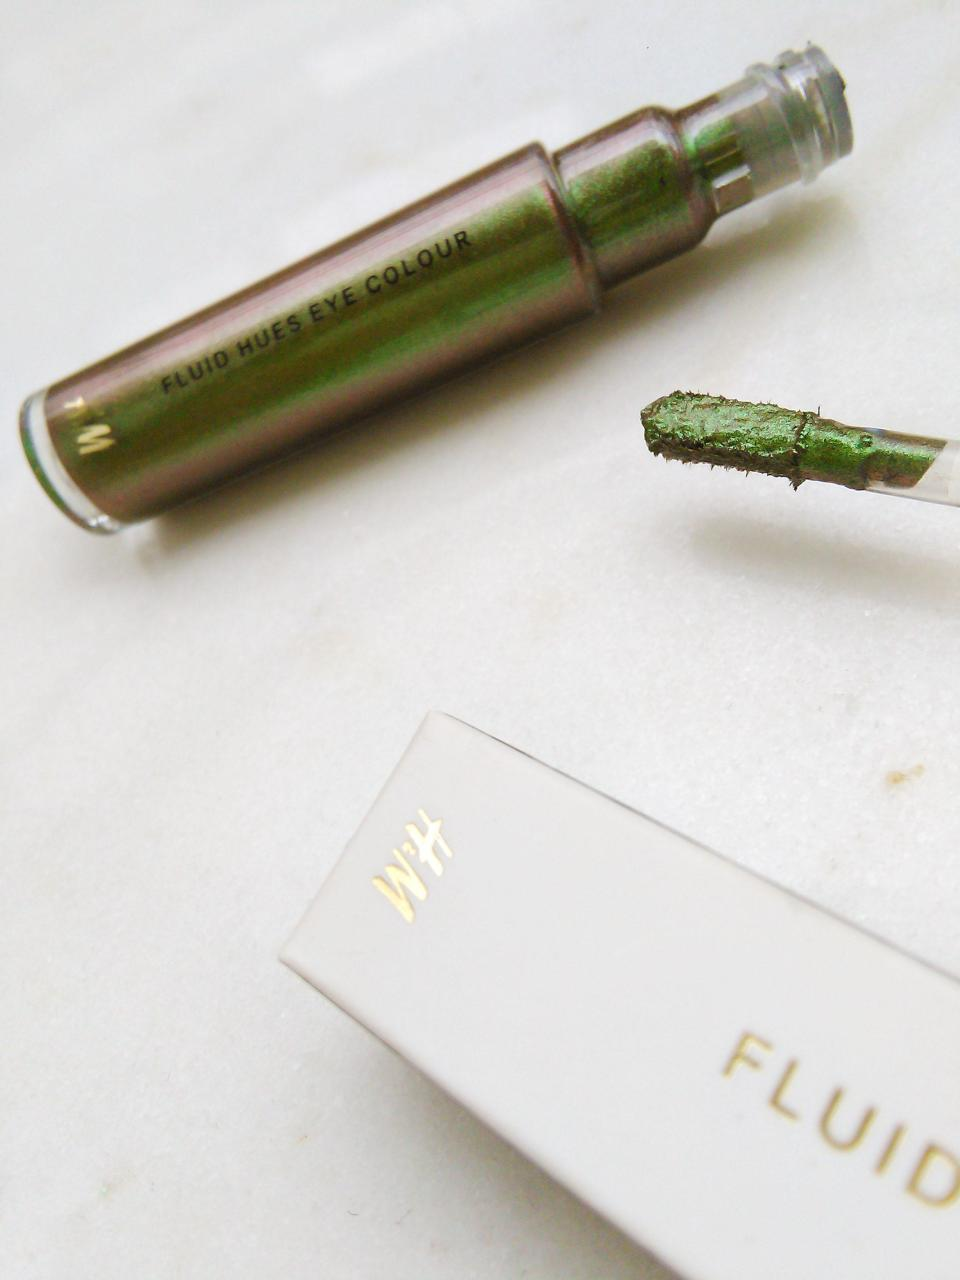 H&M nw makeup range fluid hues green holographic